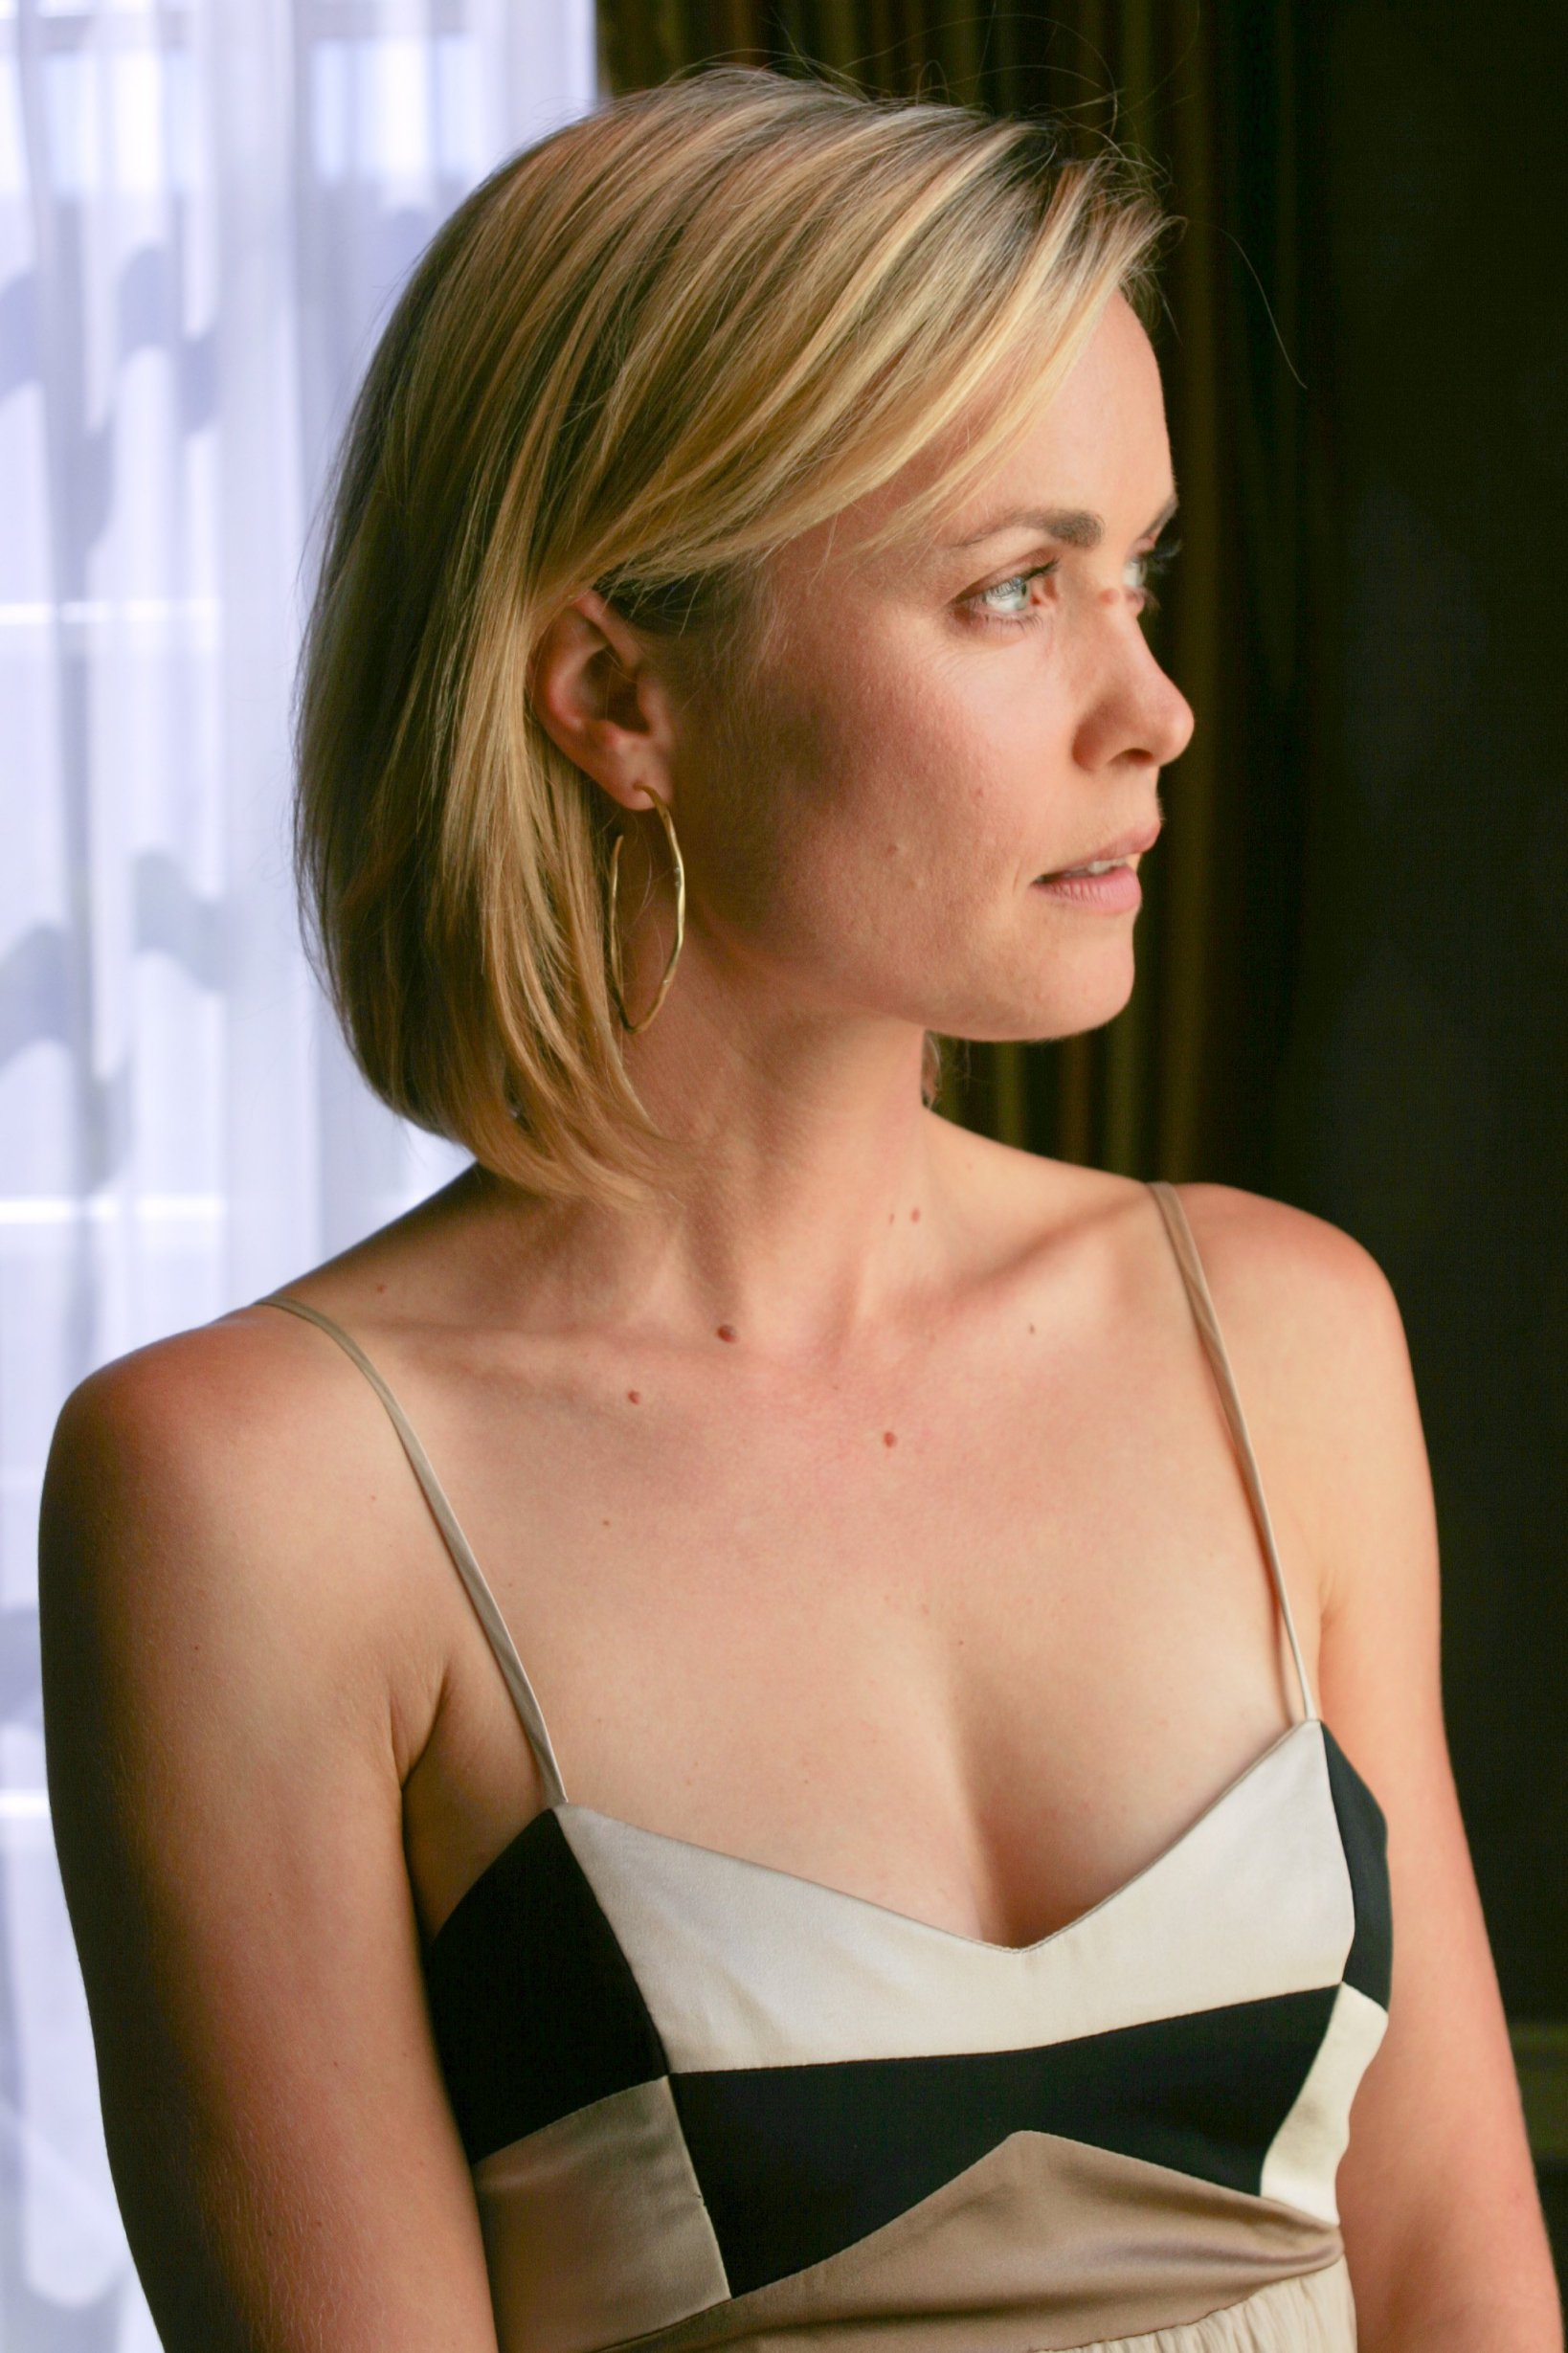 radha mitchell ageradha mitchell wiki, radha mitchell maxim, radha mitchell family, radha mitchell spouse, radha mitchell married, radha mitchell vk, radha mitchell net worth, radha mitchell imdb, radha mitchell and rosie perez, radha mitchell darkness, radha mitchell instagram, radha mitchell husband, radha mitchell age, radha mitchell movies, radha mitchell, radha mitchell parents, radha mitchell boyfriend, radha mitchell 2015